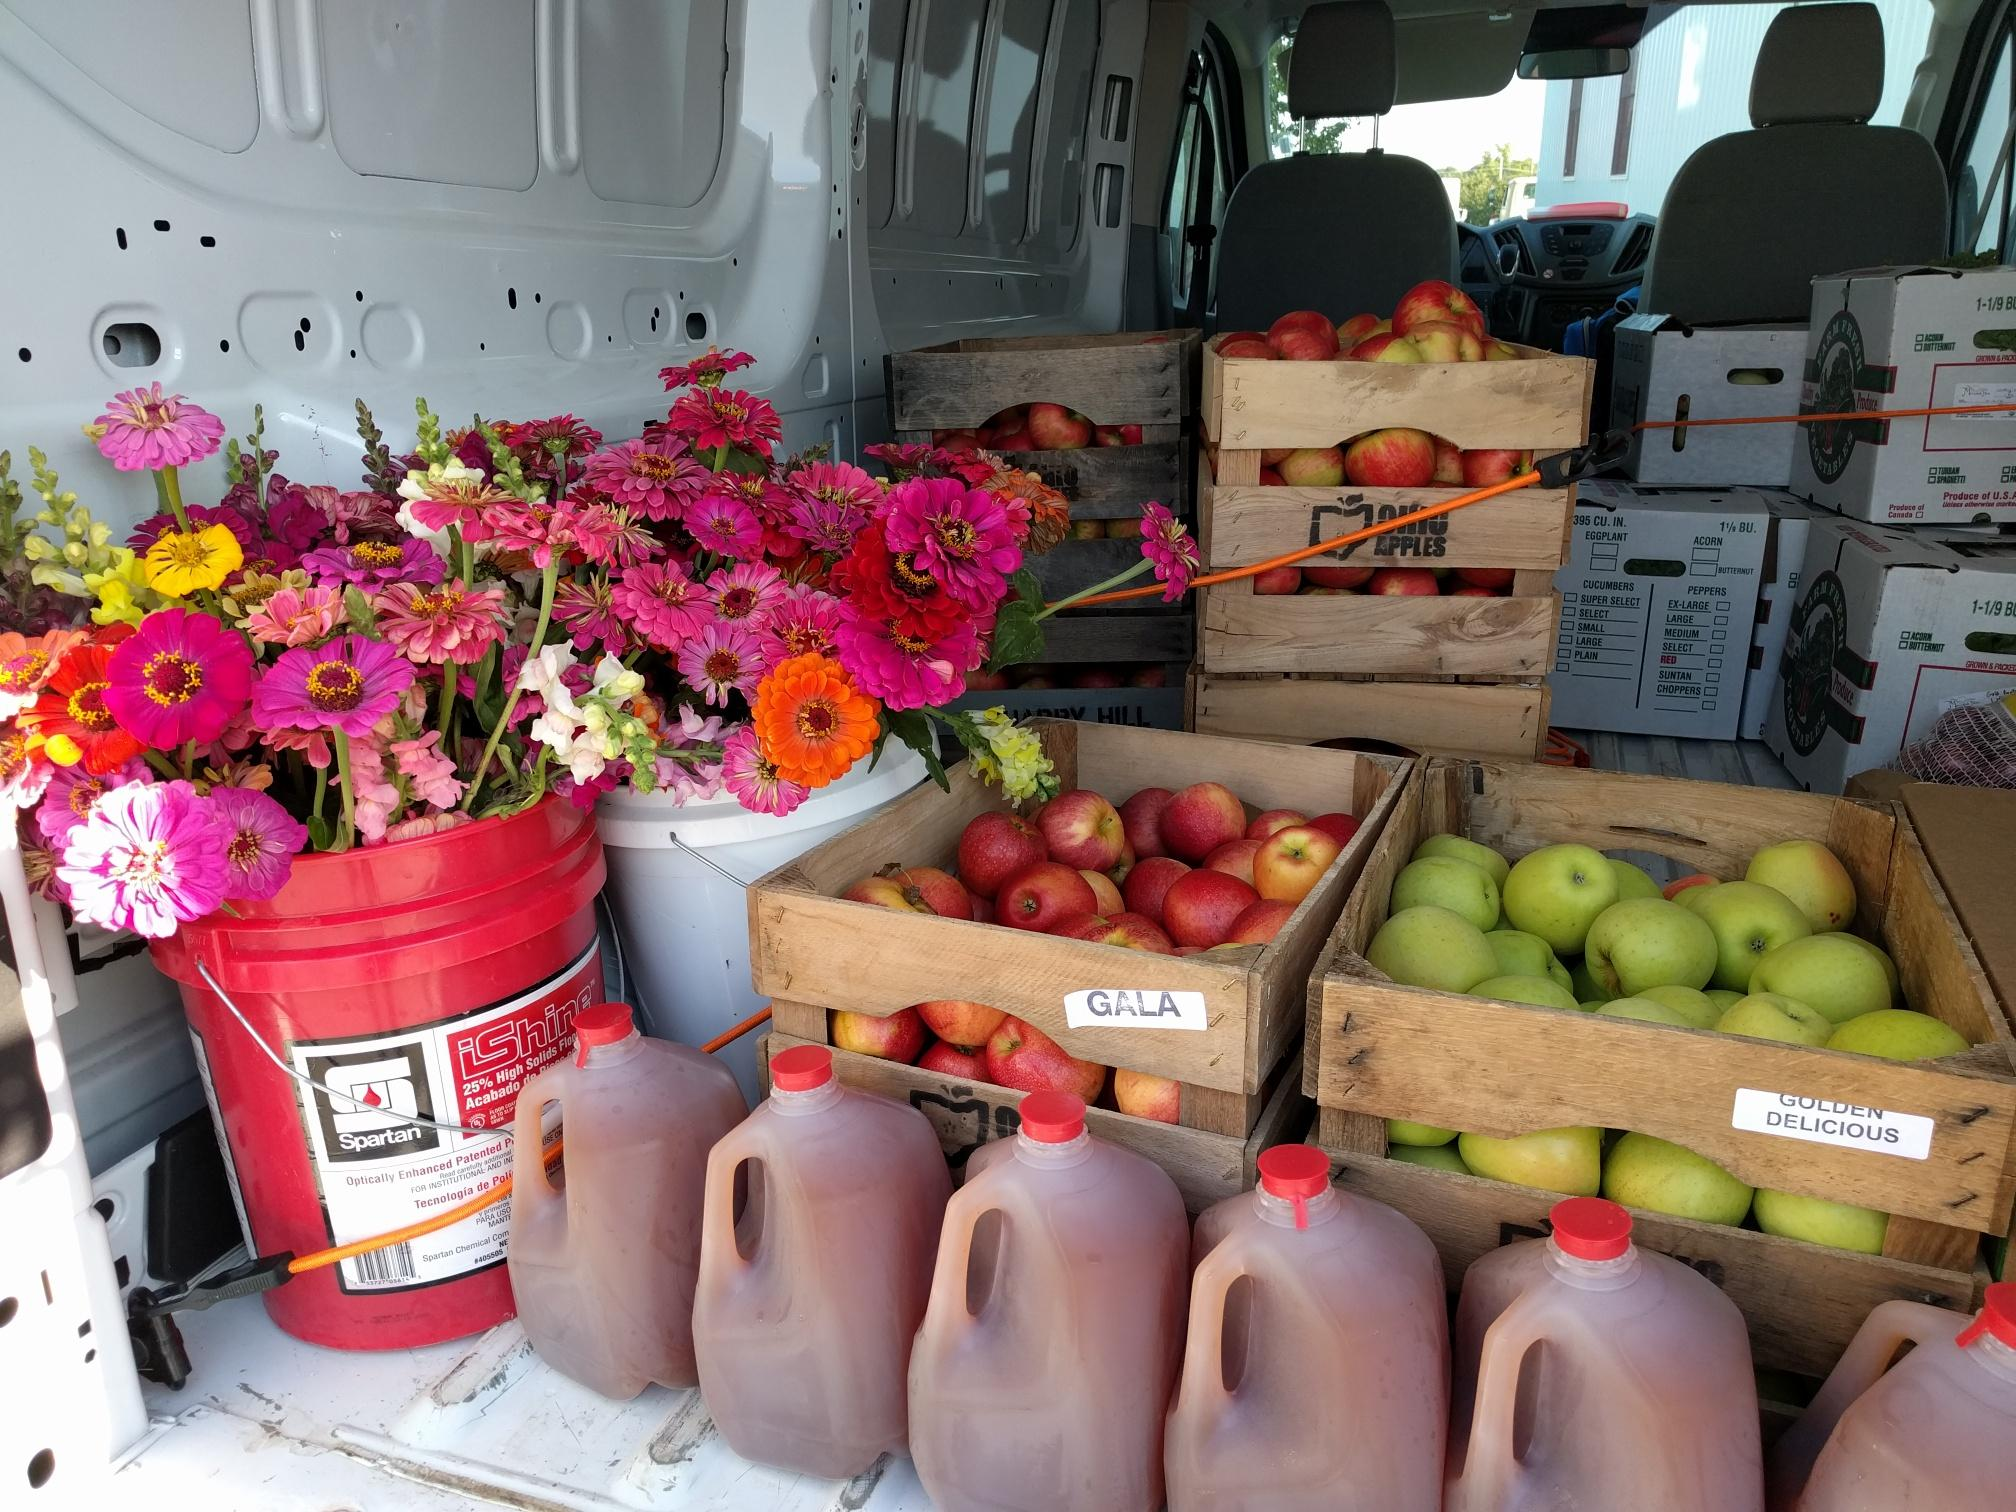 Apples and Cider from Quarry Hill Orchards (Berlin Heights, OH)